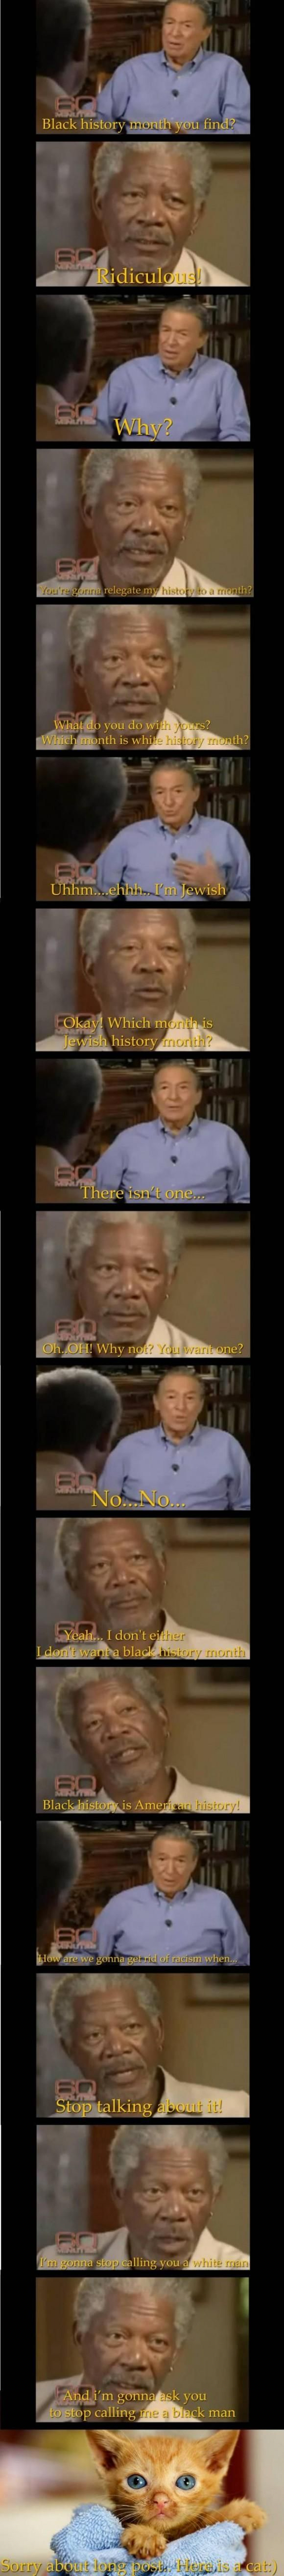 Morgan Freeman on racism! Definitely read this in my head with his voice....